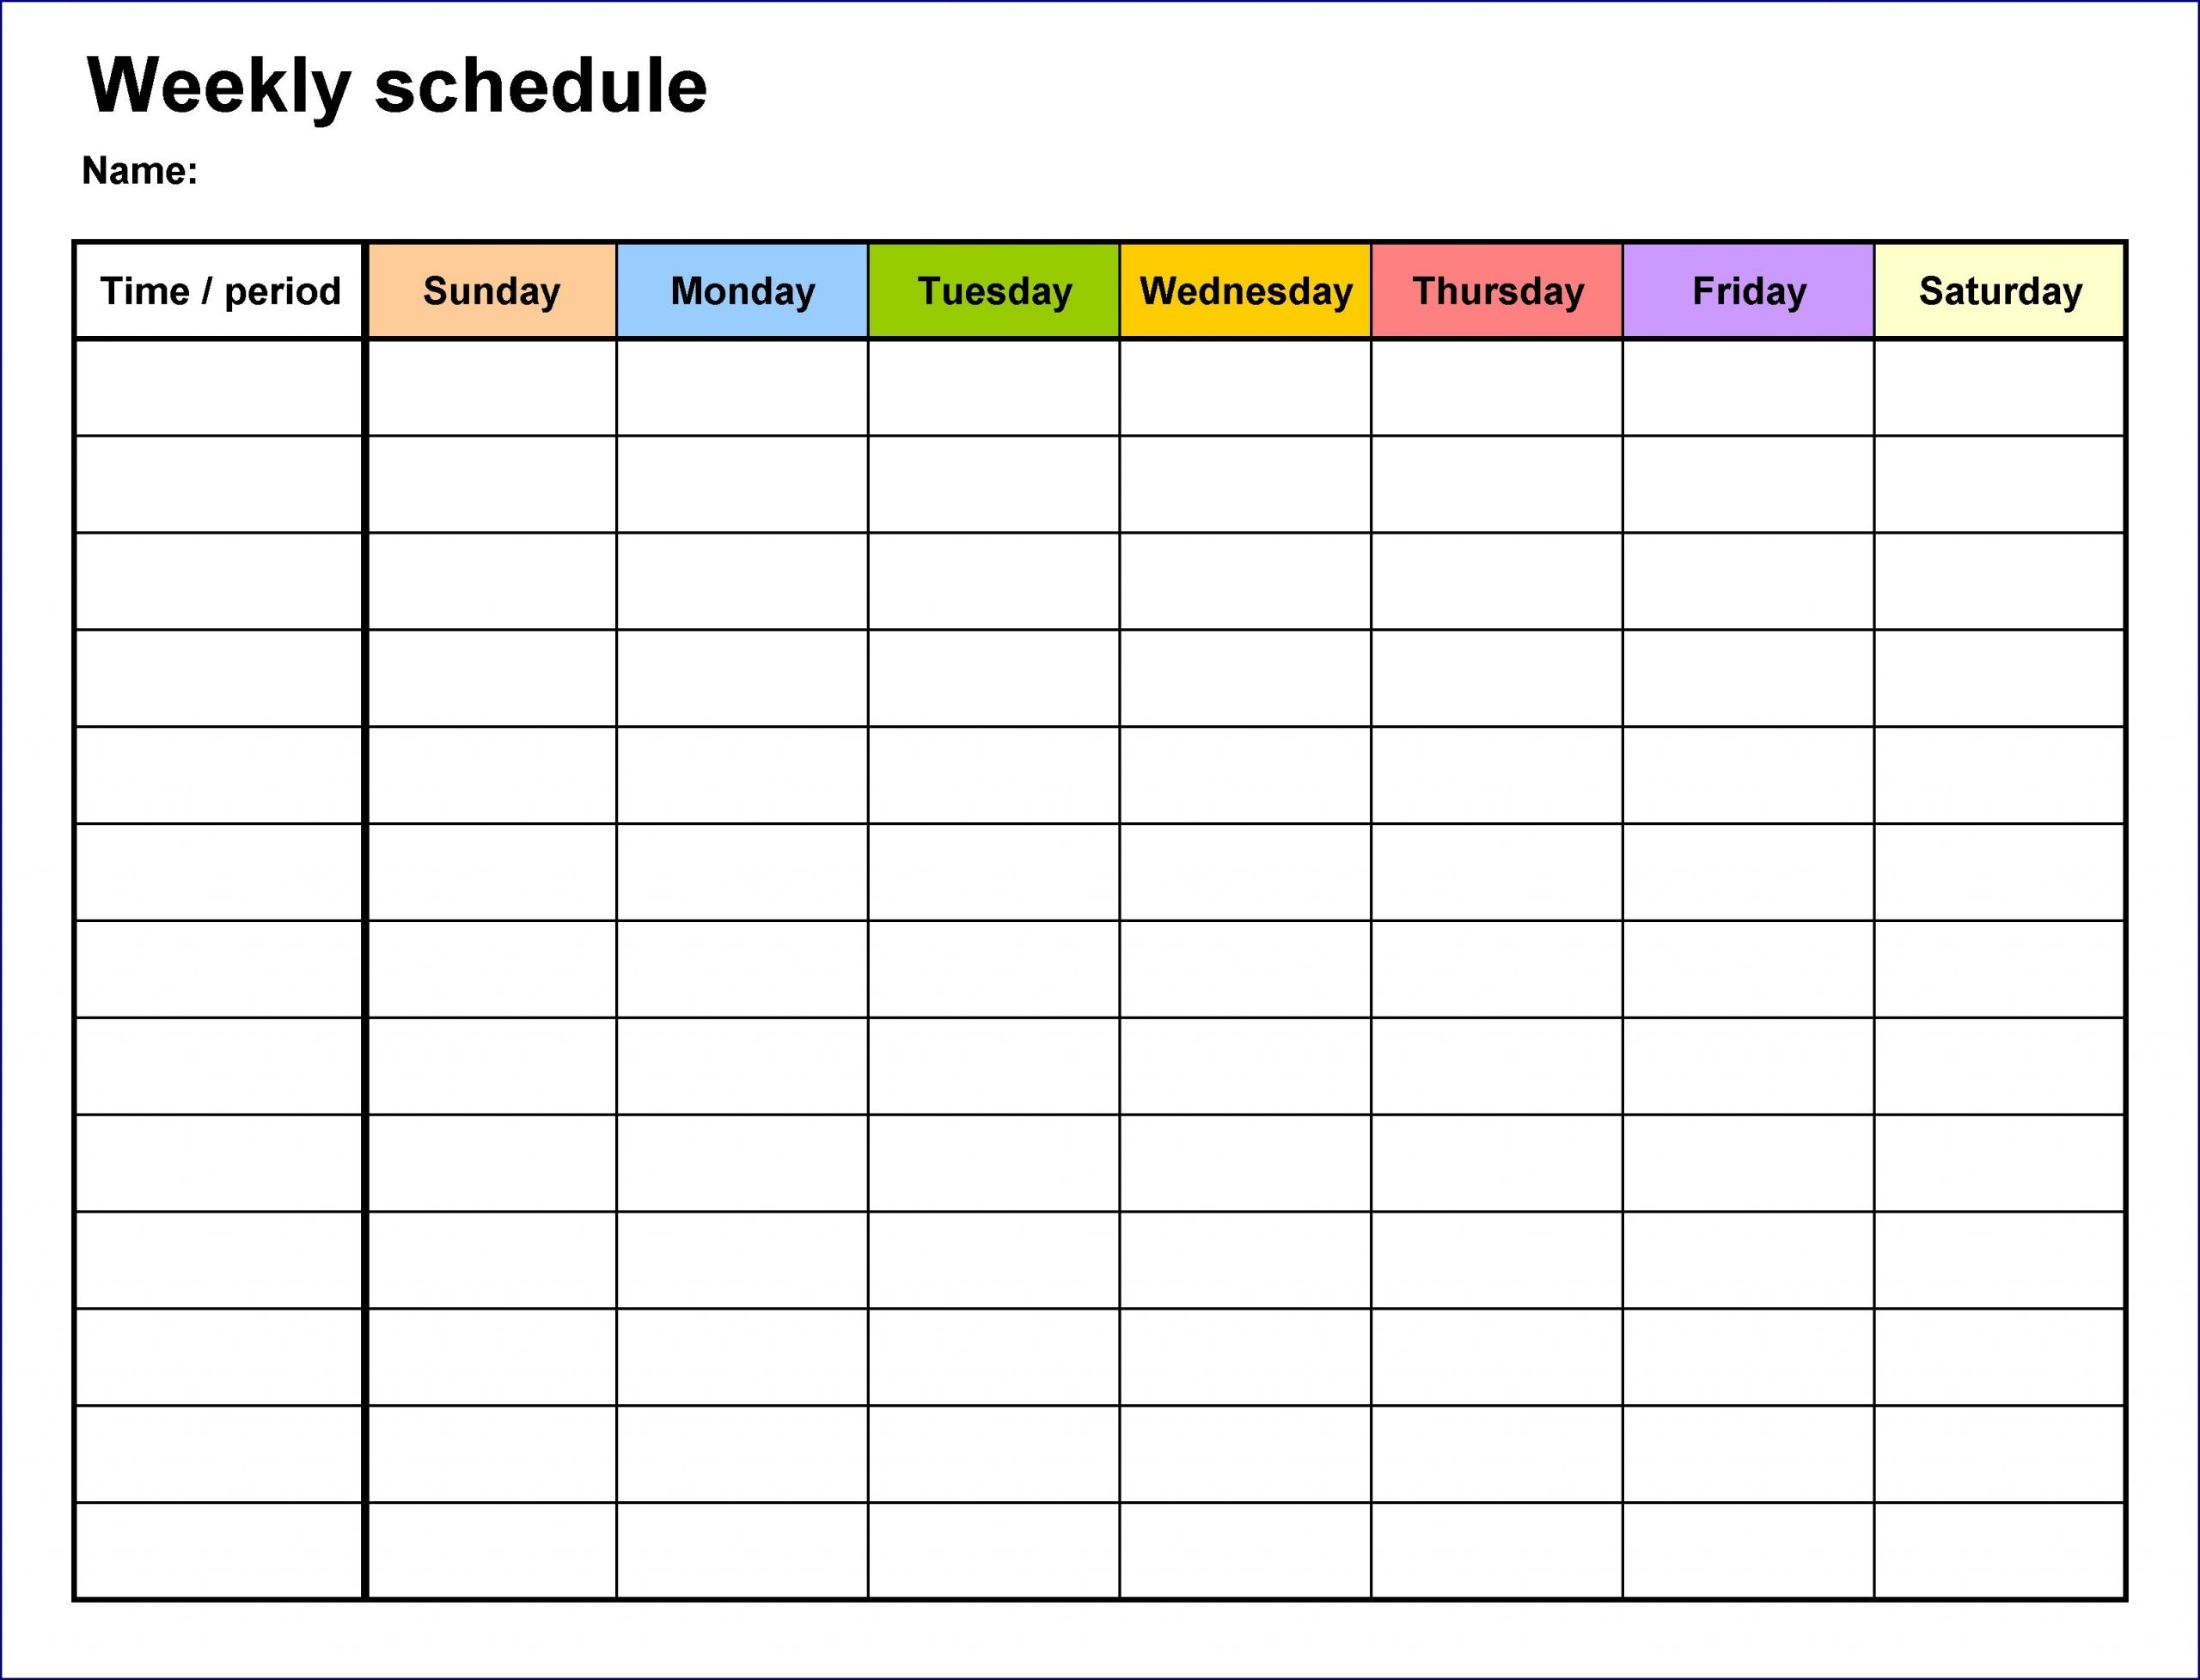 Weekly Timetable Example